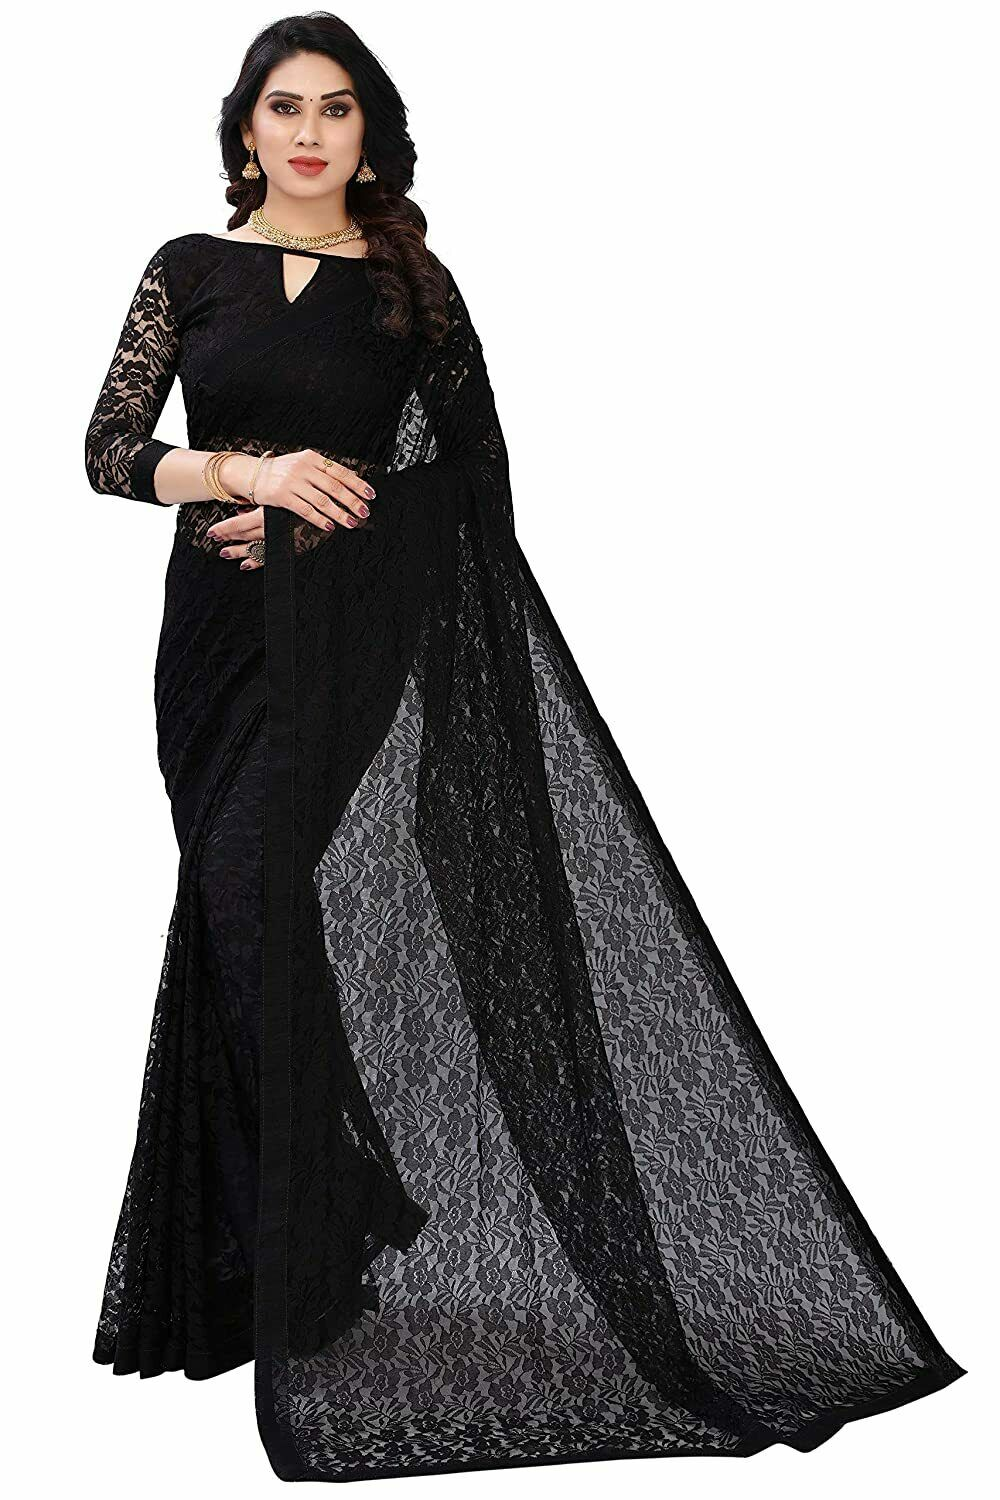 Indian Women's Jacquard Dyed, Net Saree With Blouse Piece, Black